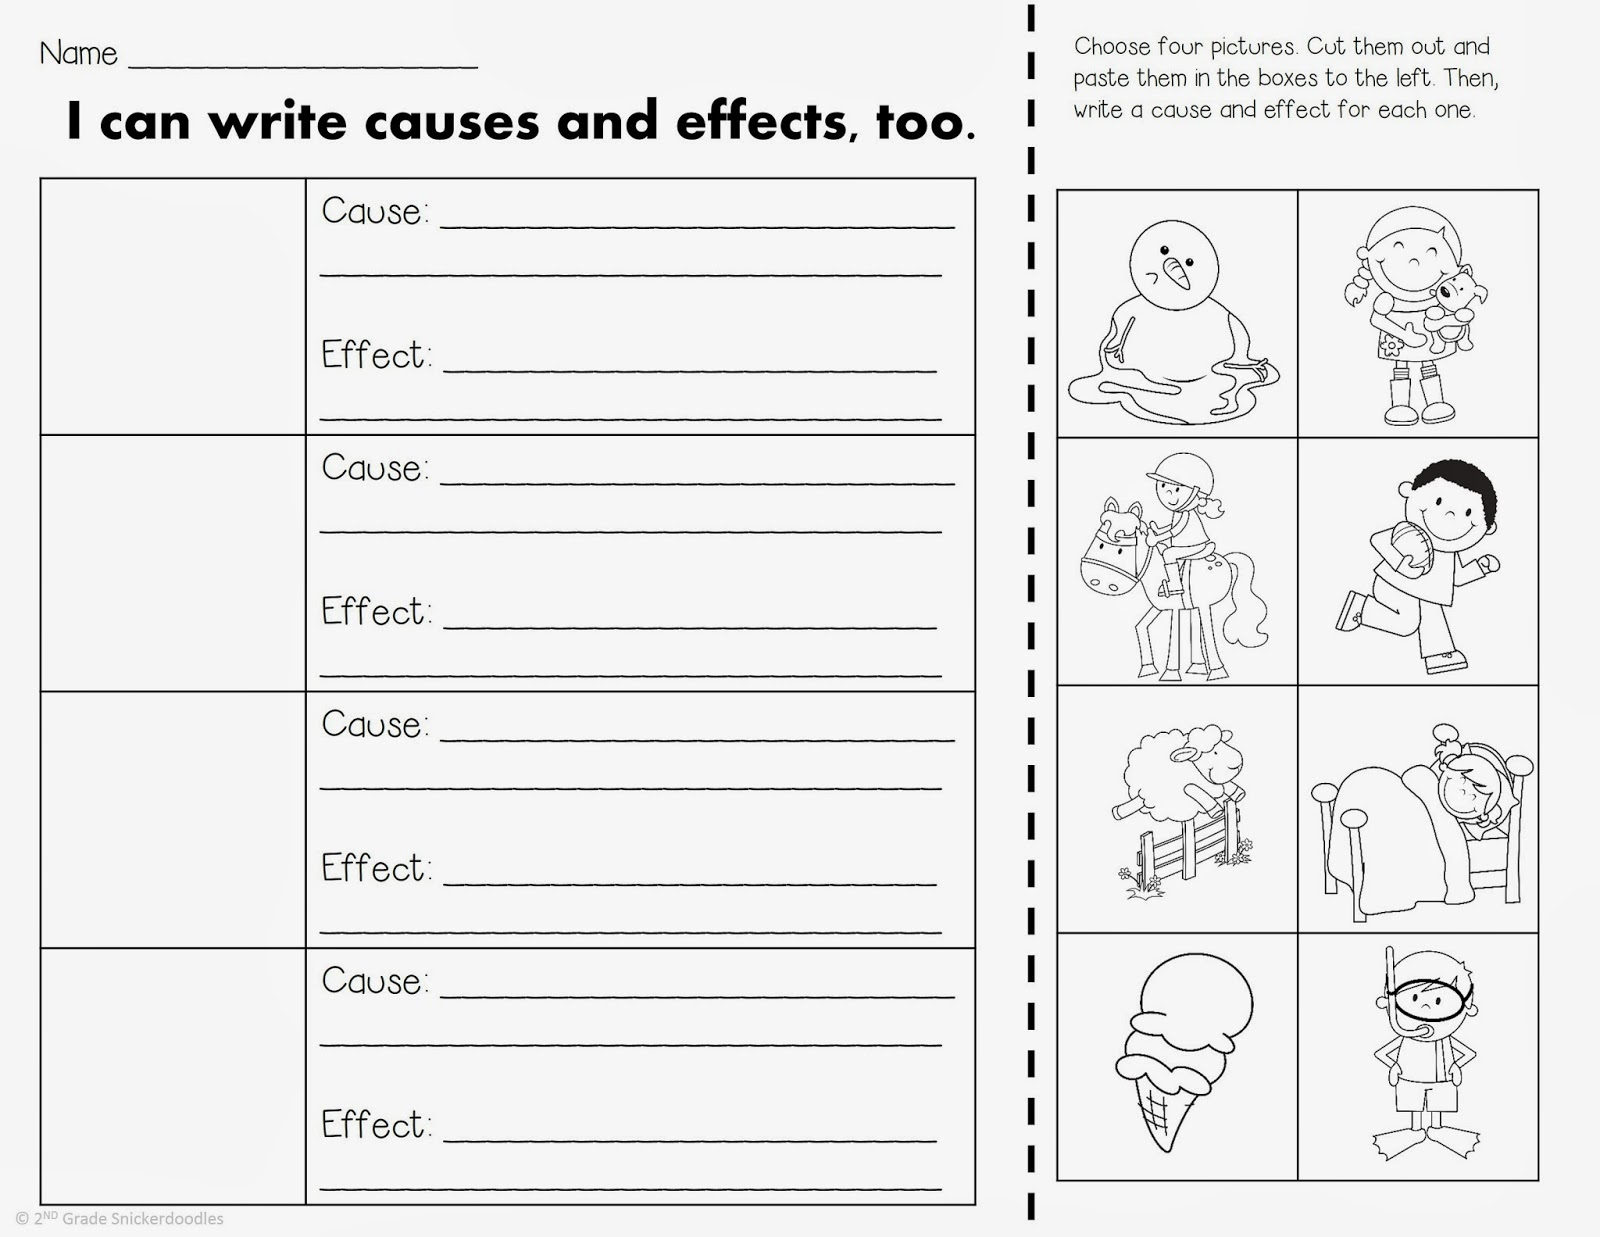 small resolution of Cause And Effect Worksheet For 7th Grade   Printable Worksheets and  Activities for Teachers